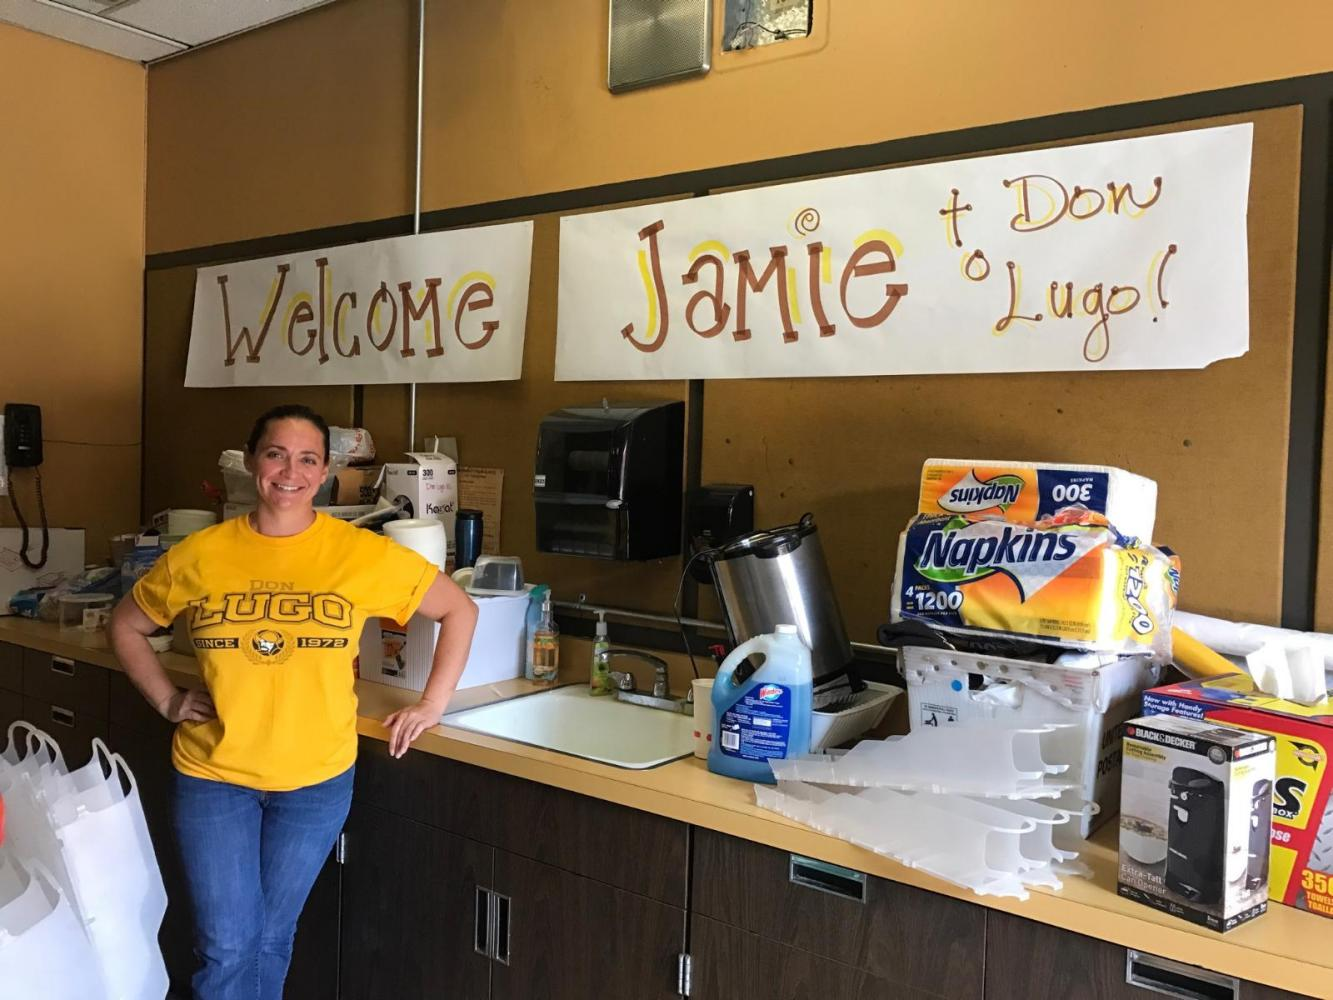 The Leadership department welcomes Jaime with a sign hung inside the student store. Jaime states ,